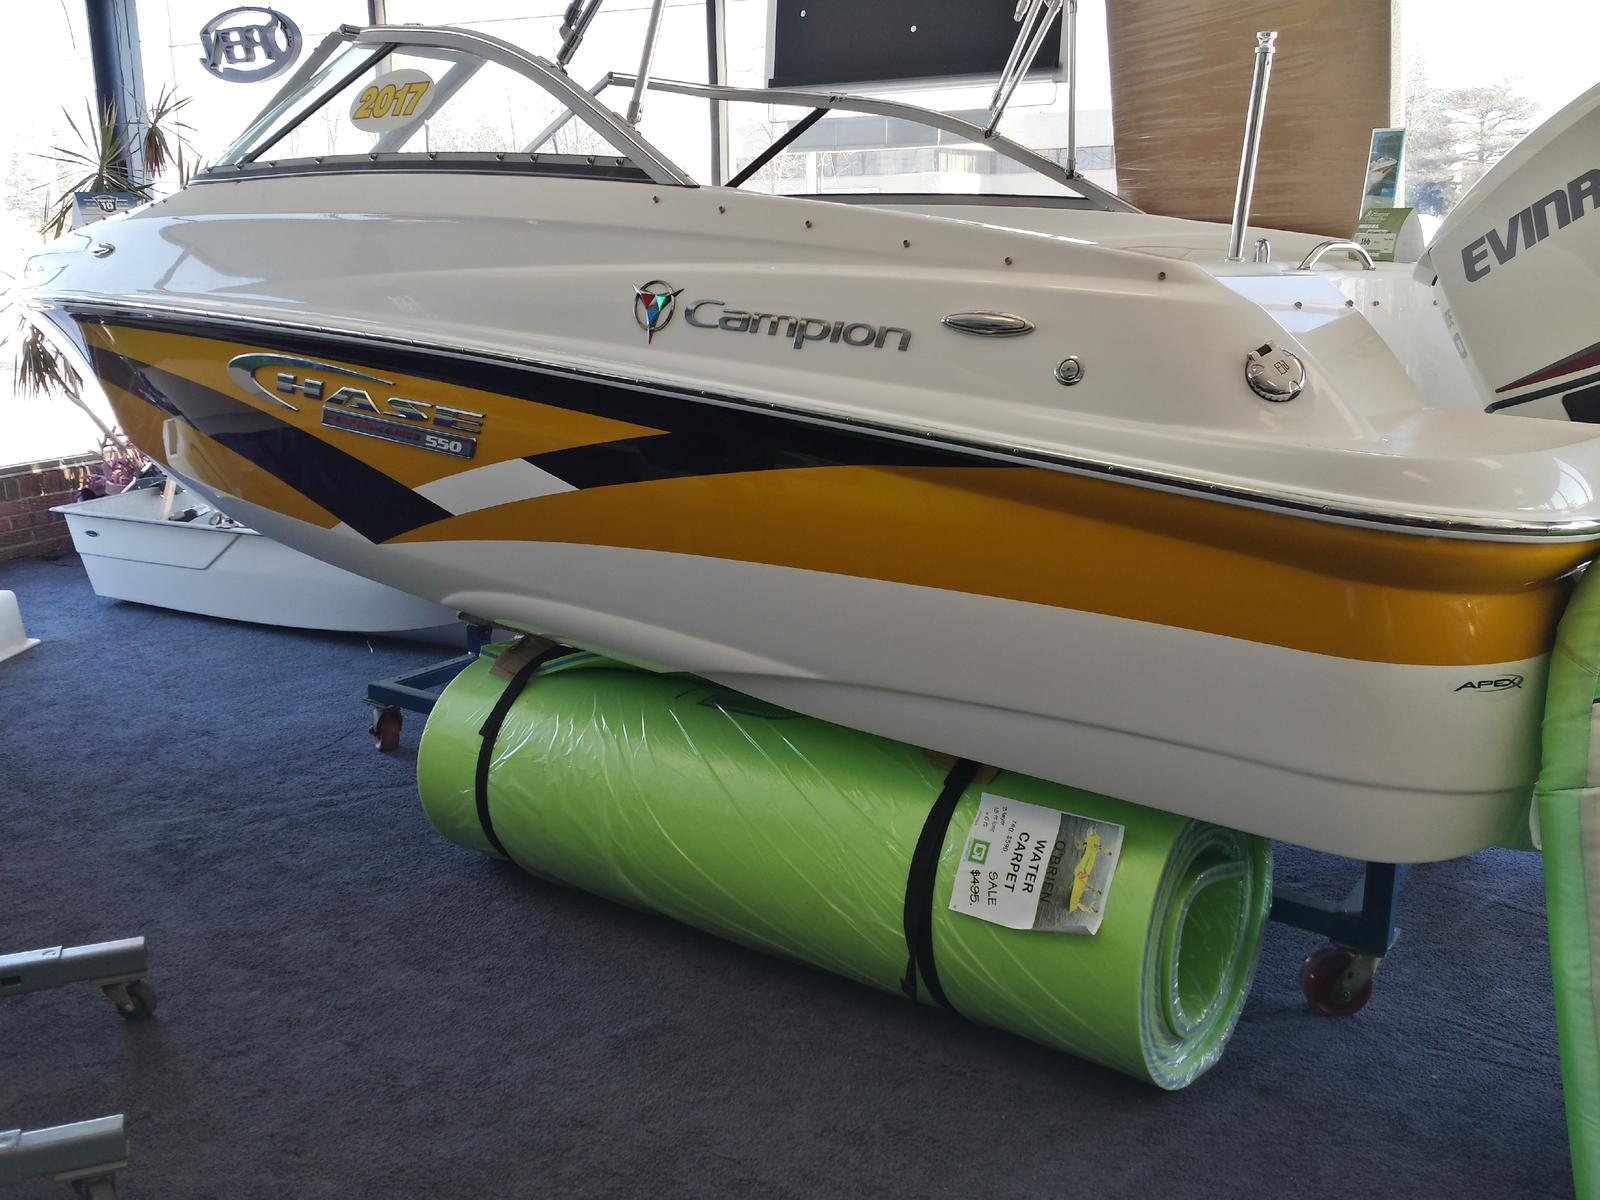 2017 CAMPION CHASE 550 BR for sale